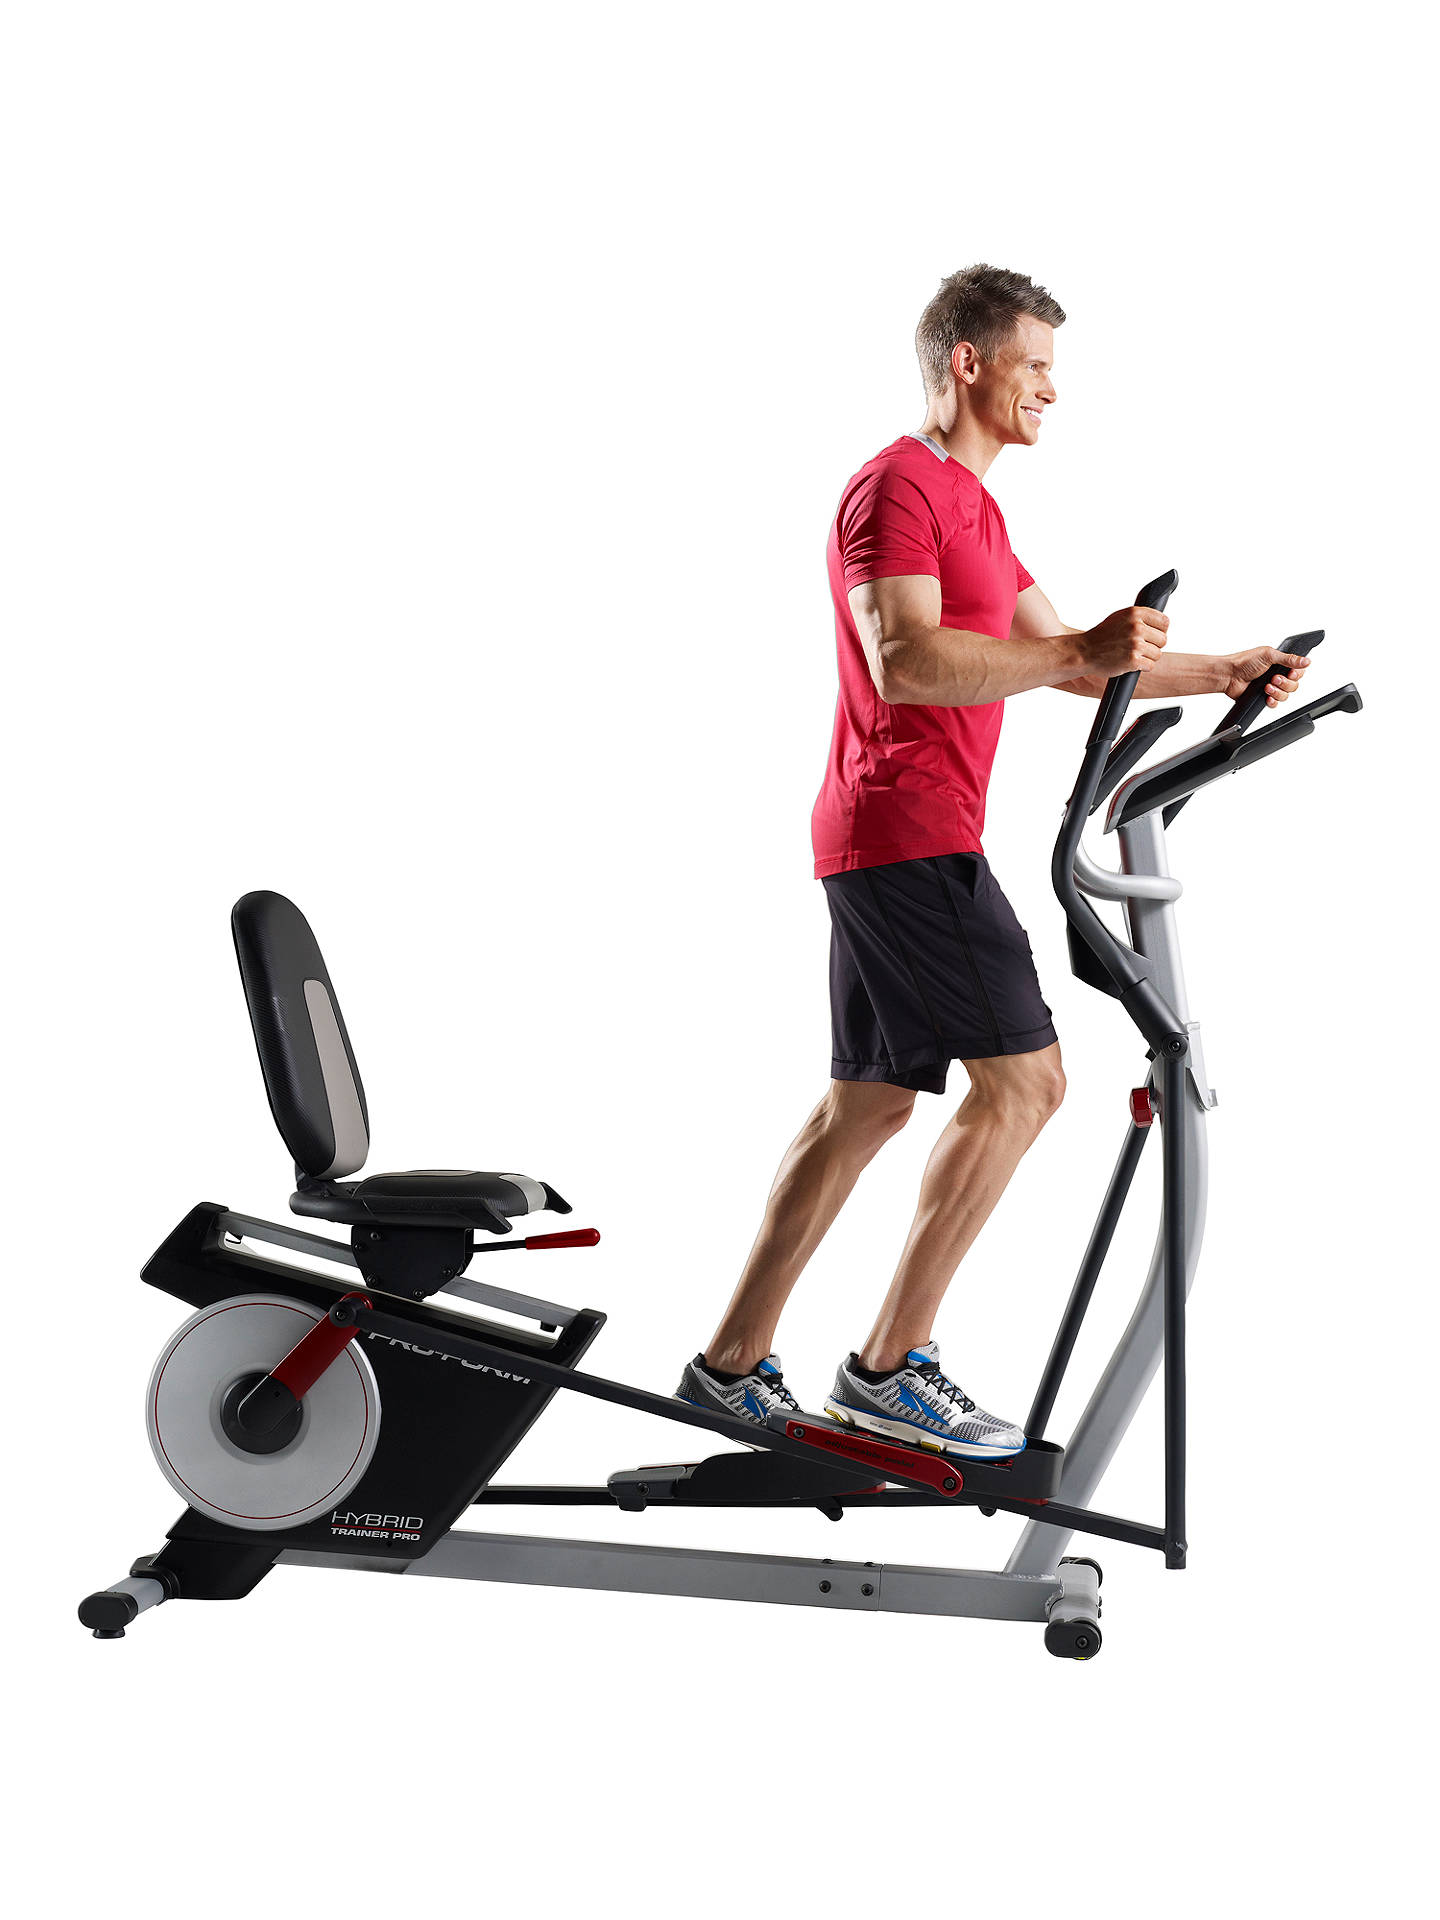 BuyProform Hybrid Trainer Pro Fitness Machine Online at johnlewis.com